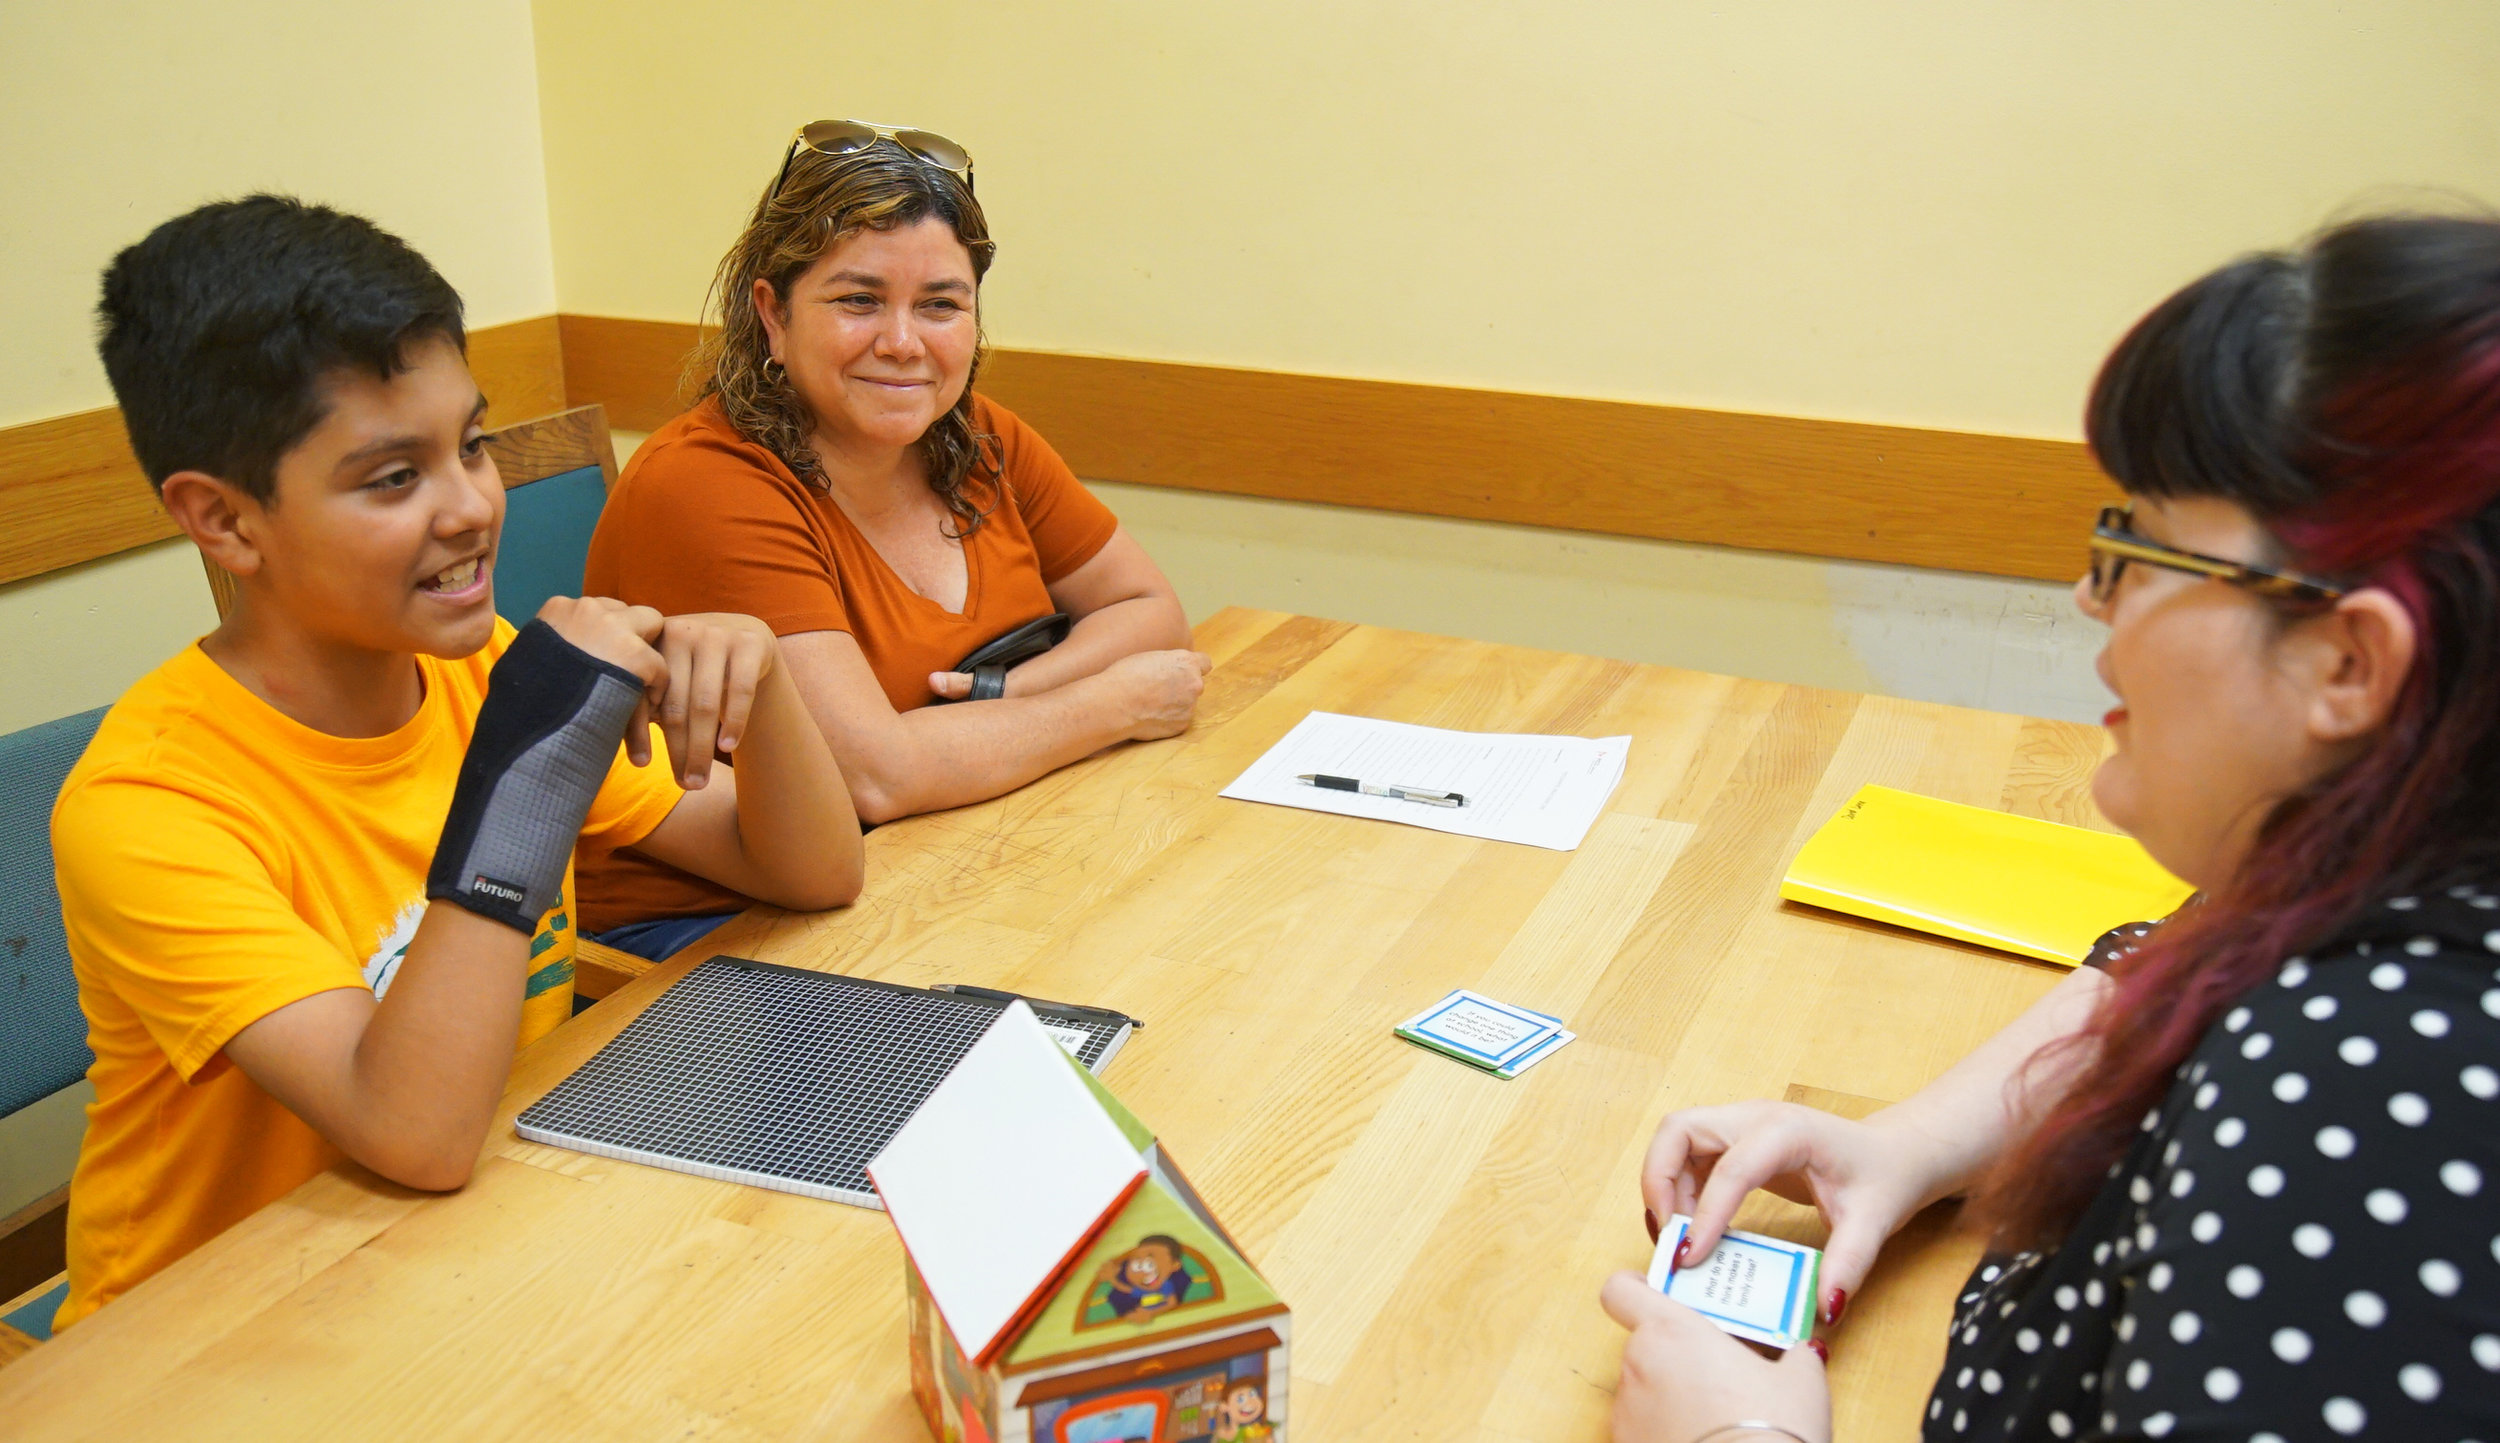 Stasha Powell during a tutoring session.